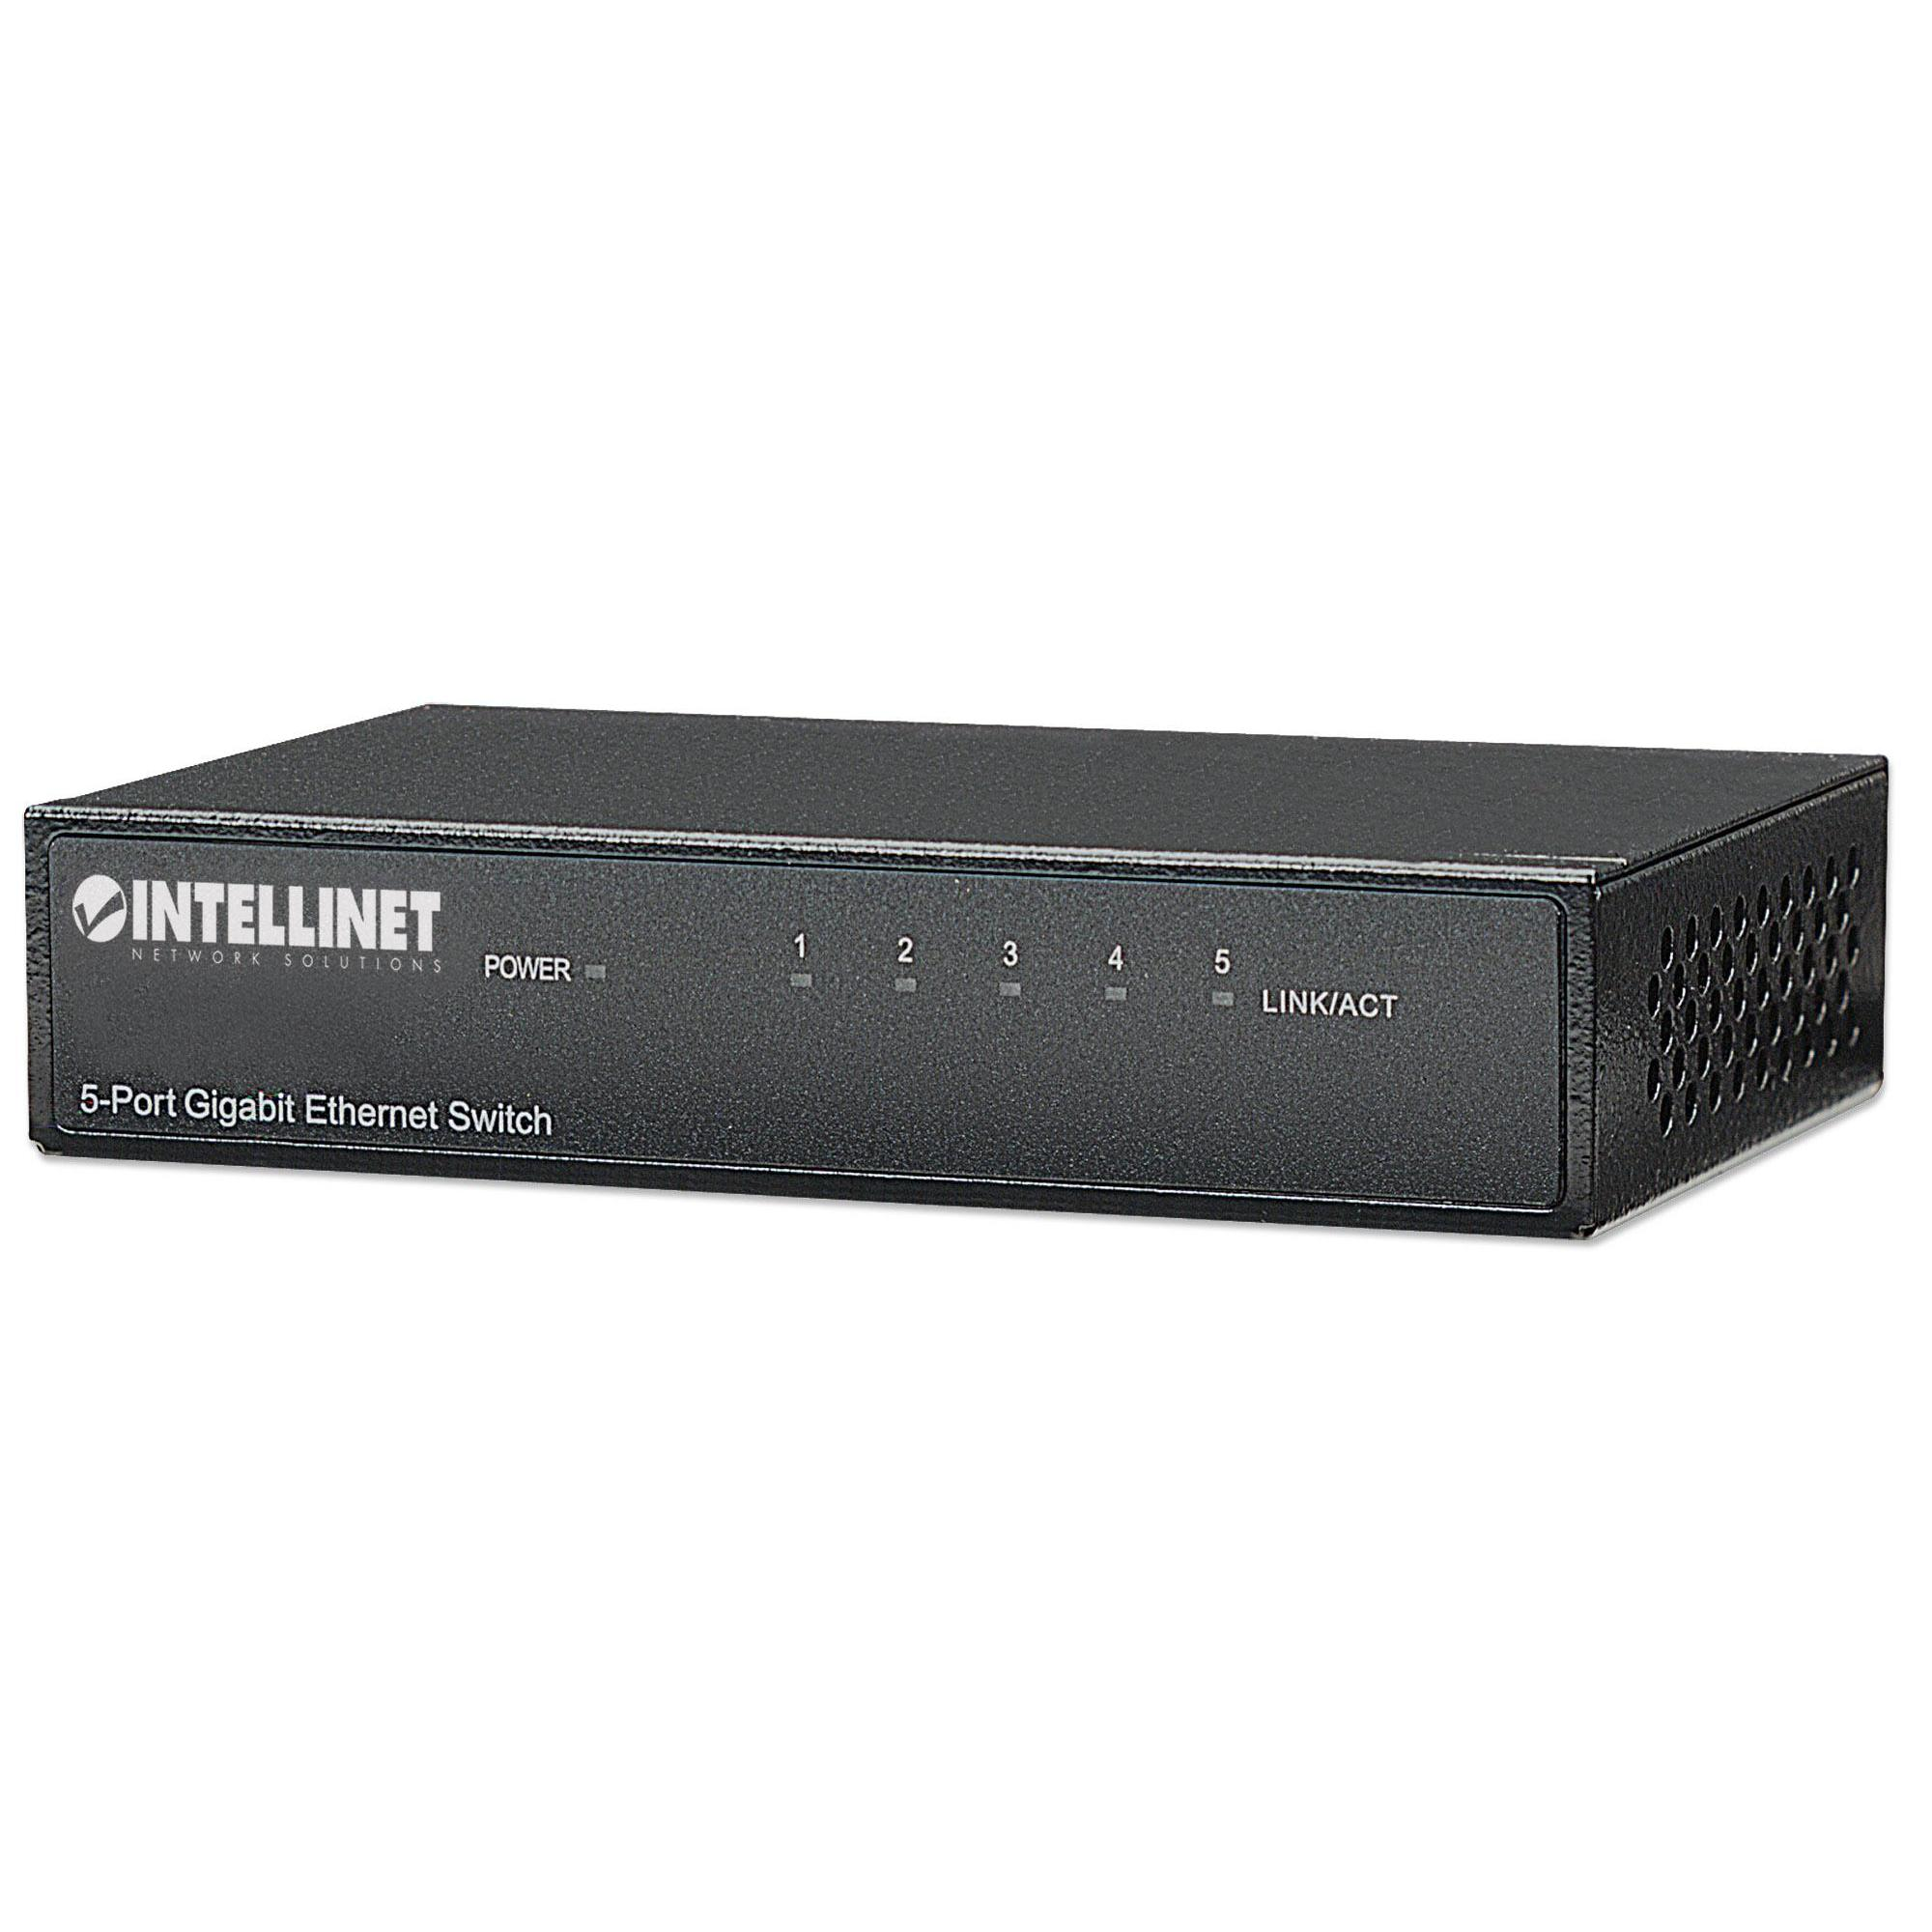 Ethernet Switch Gigabit 5 porte